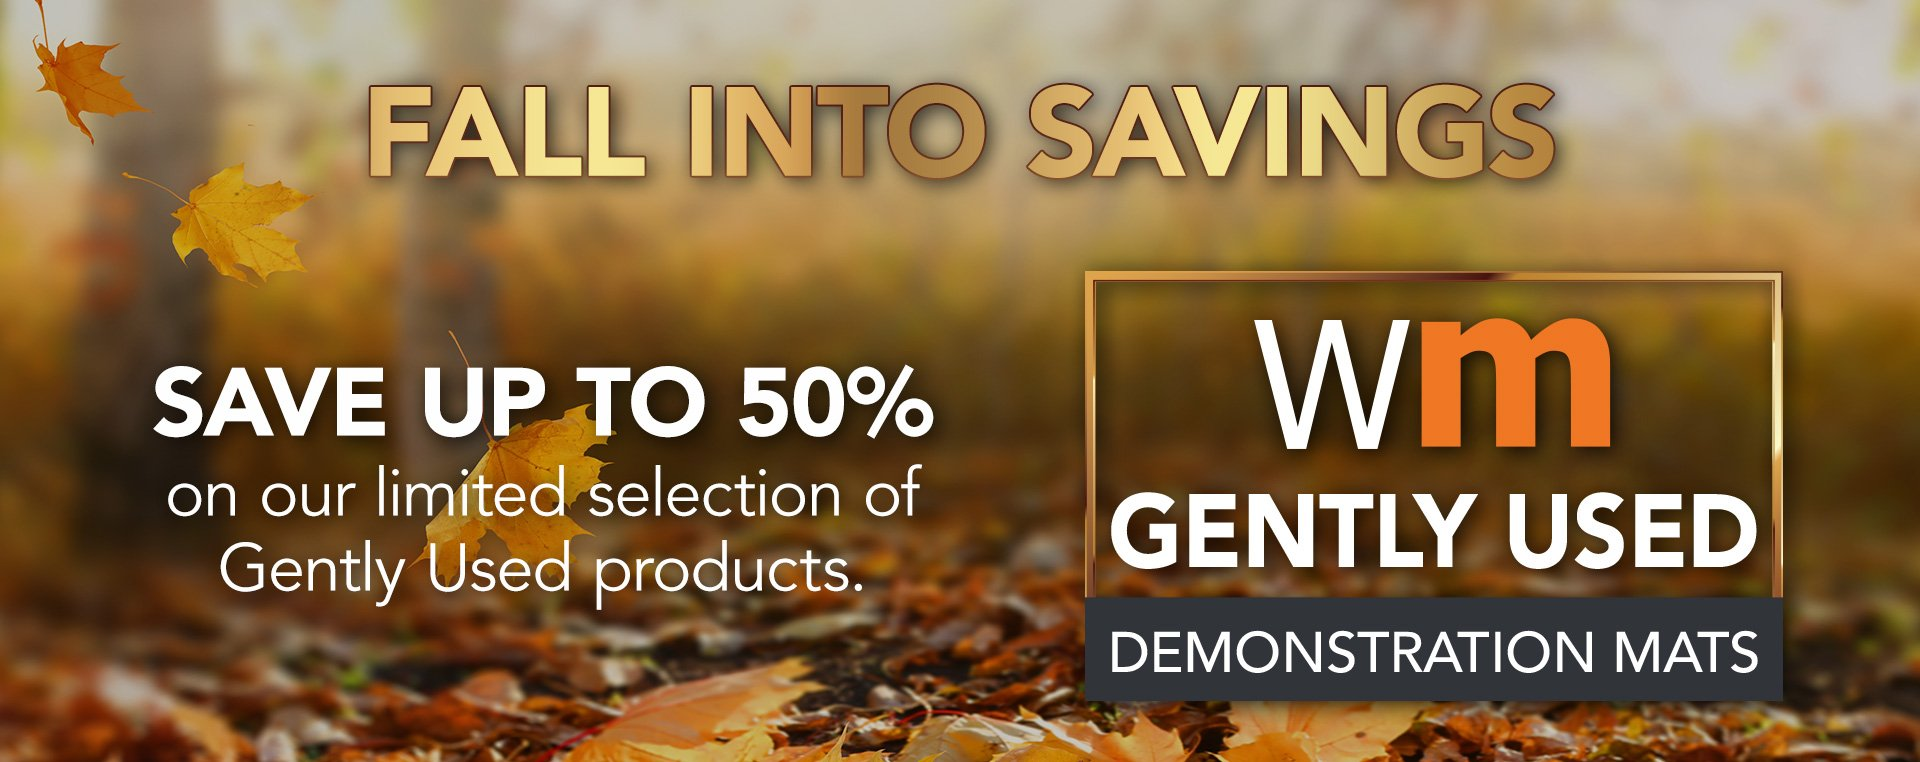 Save up to 50% on our limited selection of Gently Used products